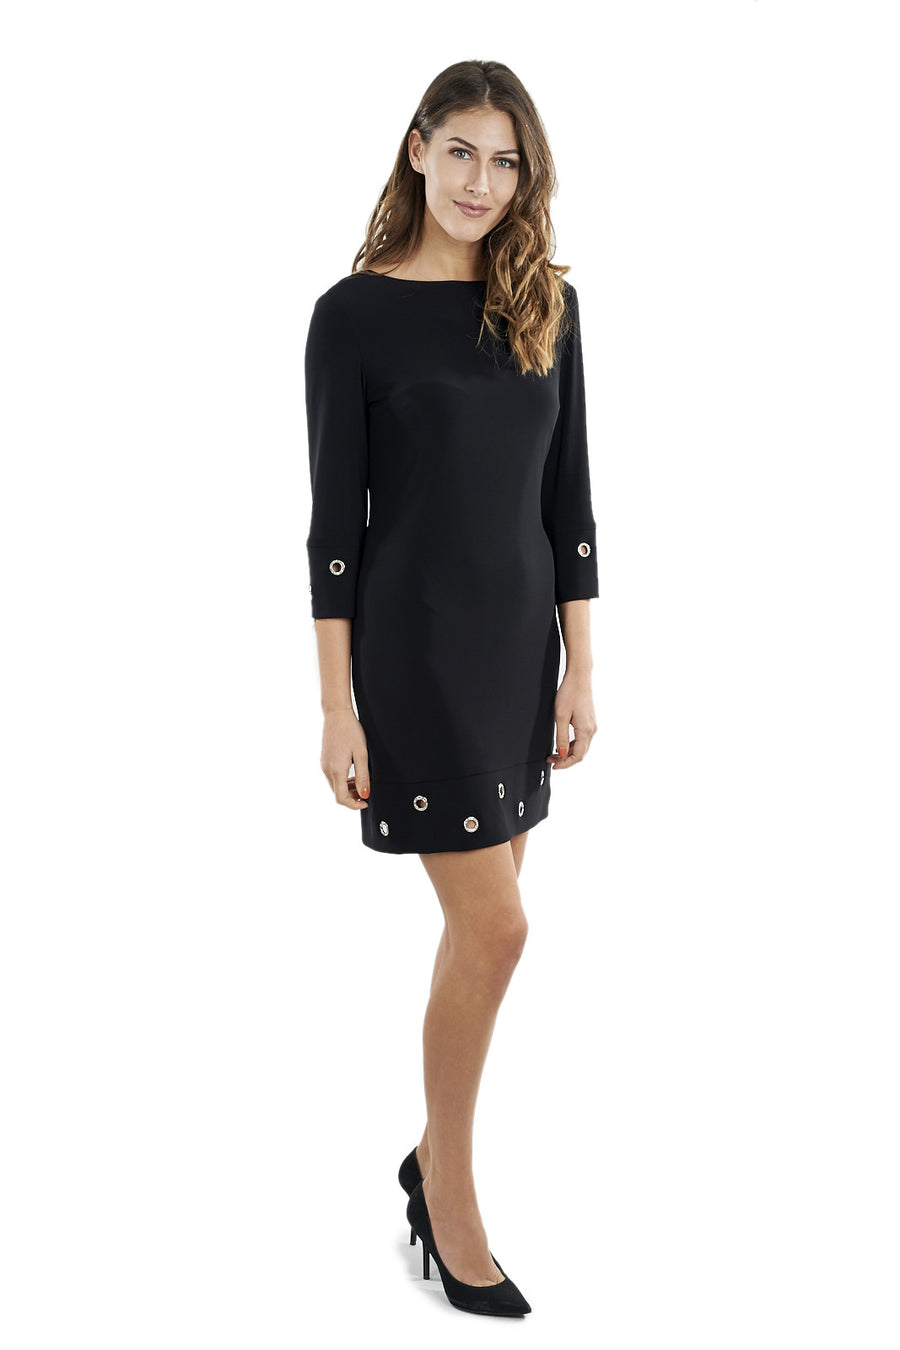 Cocktail Dress with Silver Accents and Long Sleeves